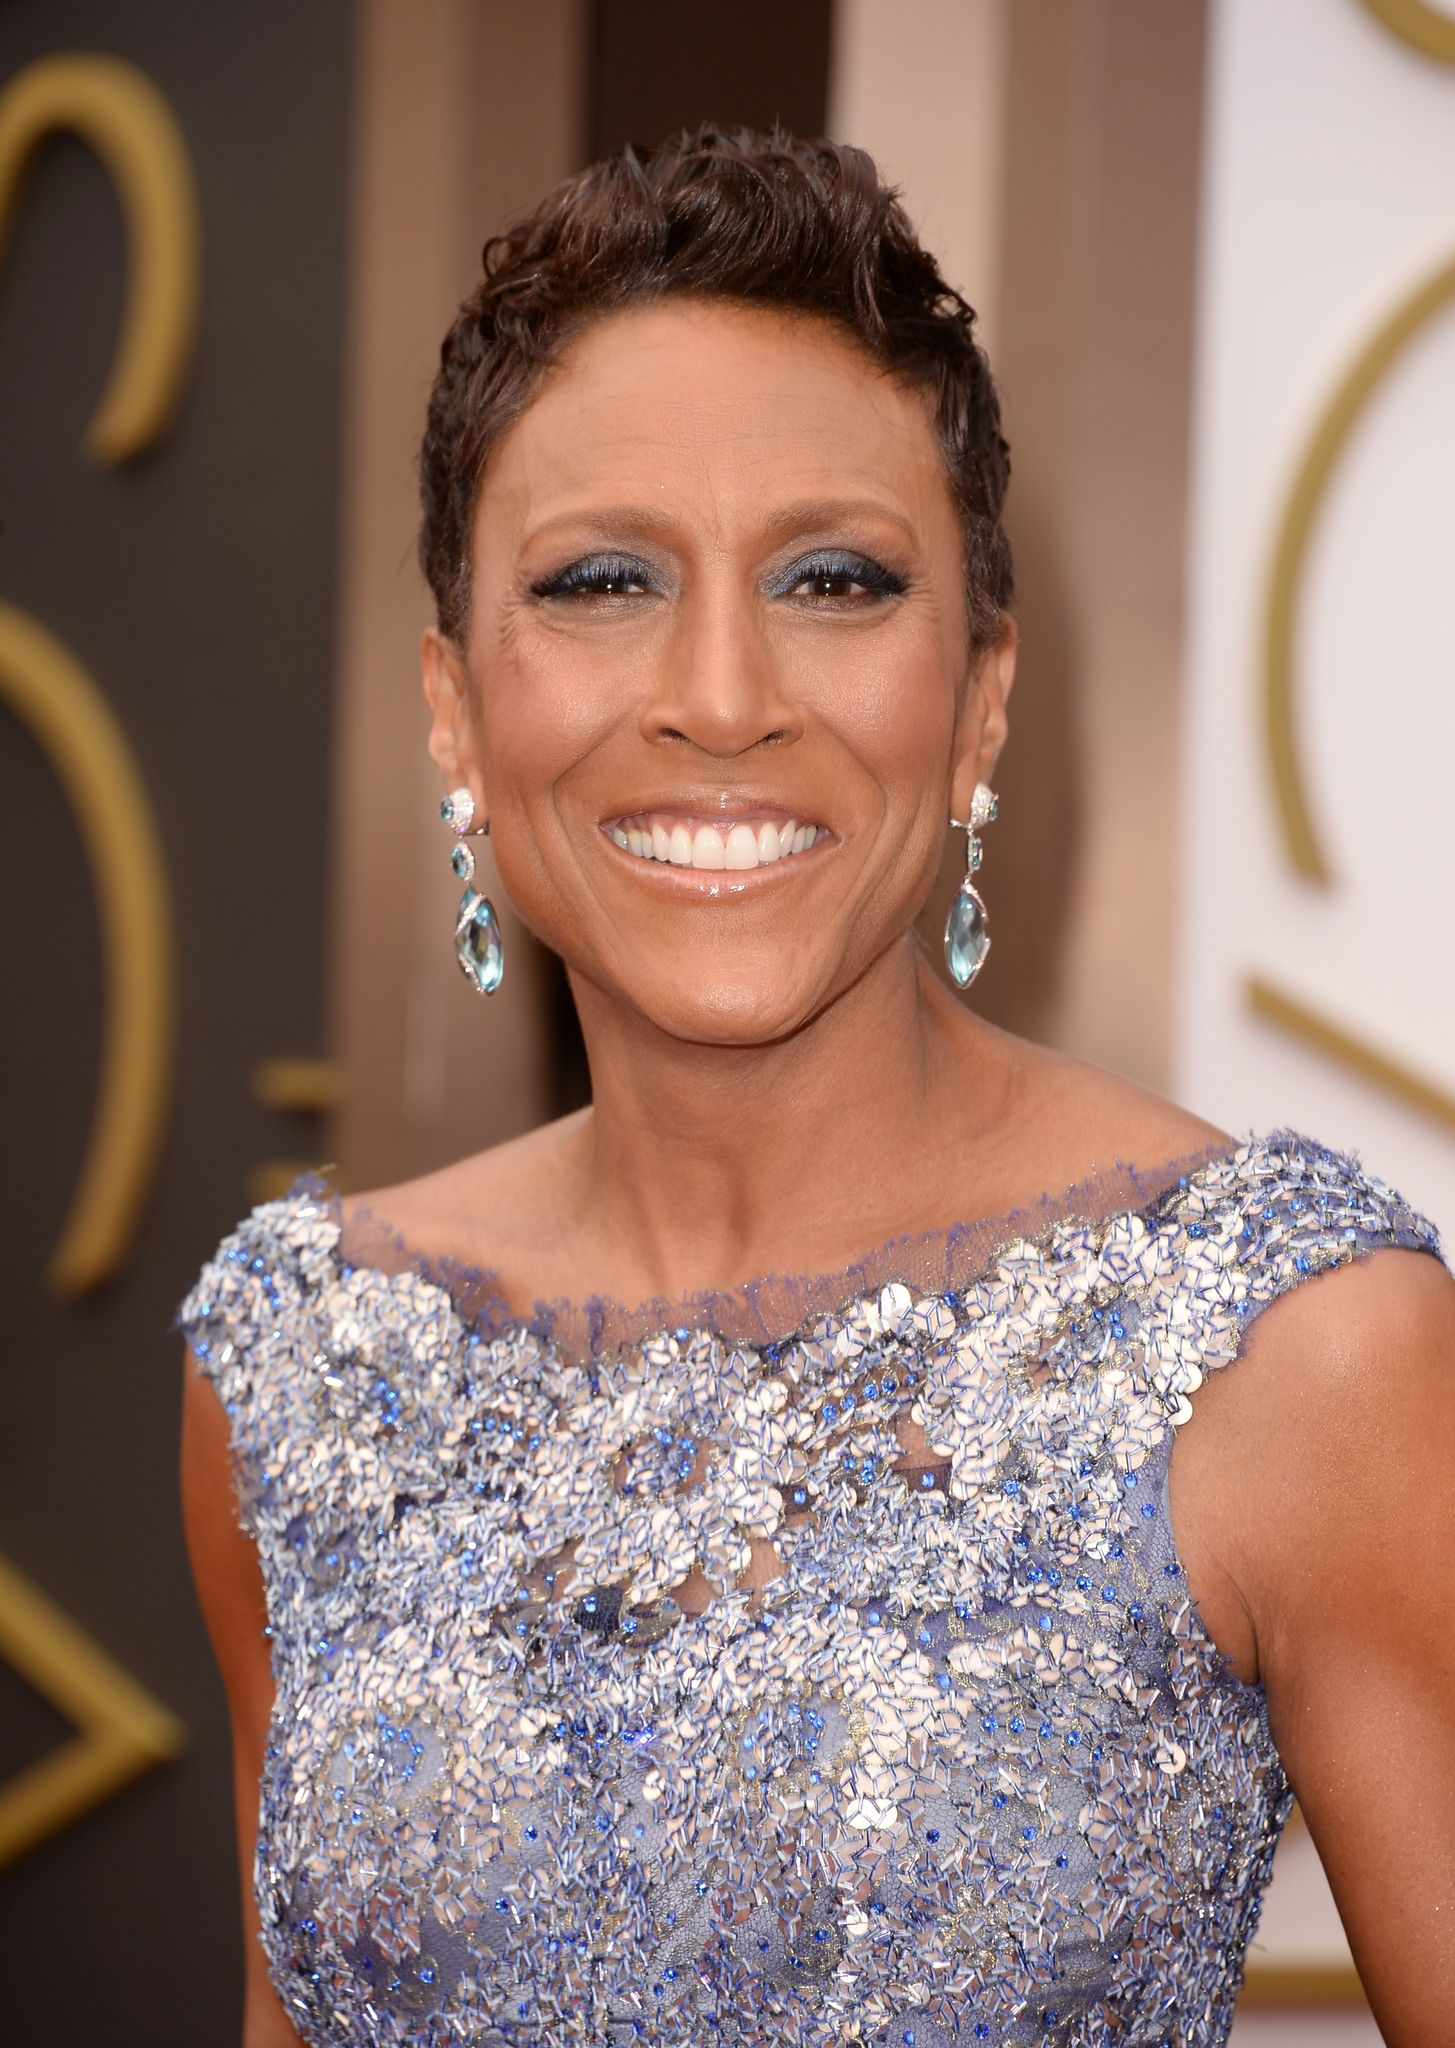 TV personality Robin Roberts at the Oscars held at Hollywood & Highland Center on March 2, 2014 in Hollywood, California. | Photo: Getty Images